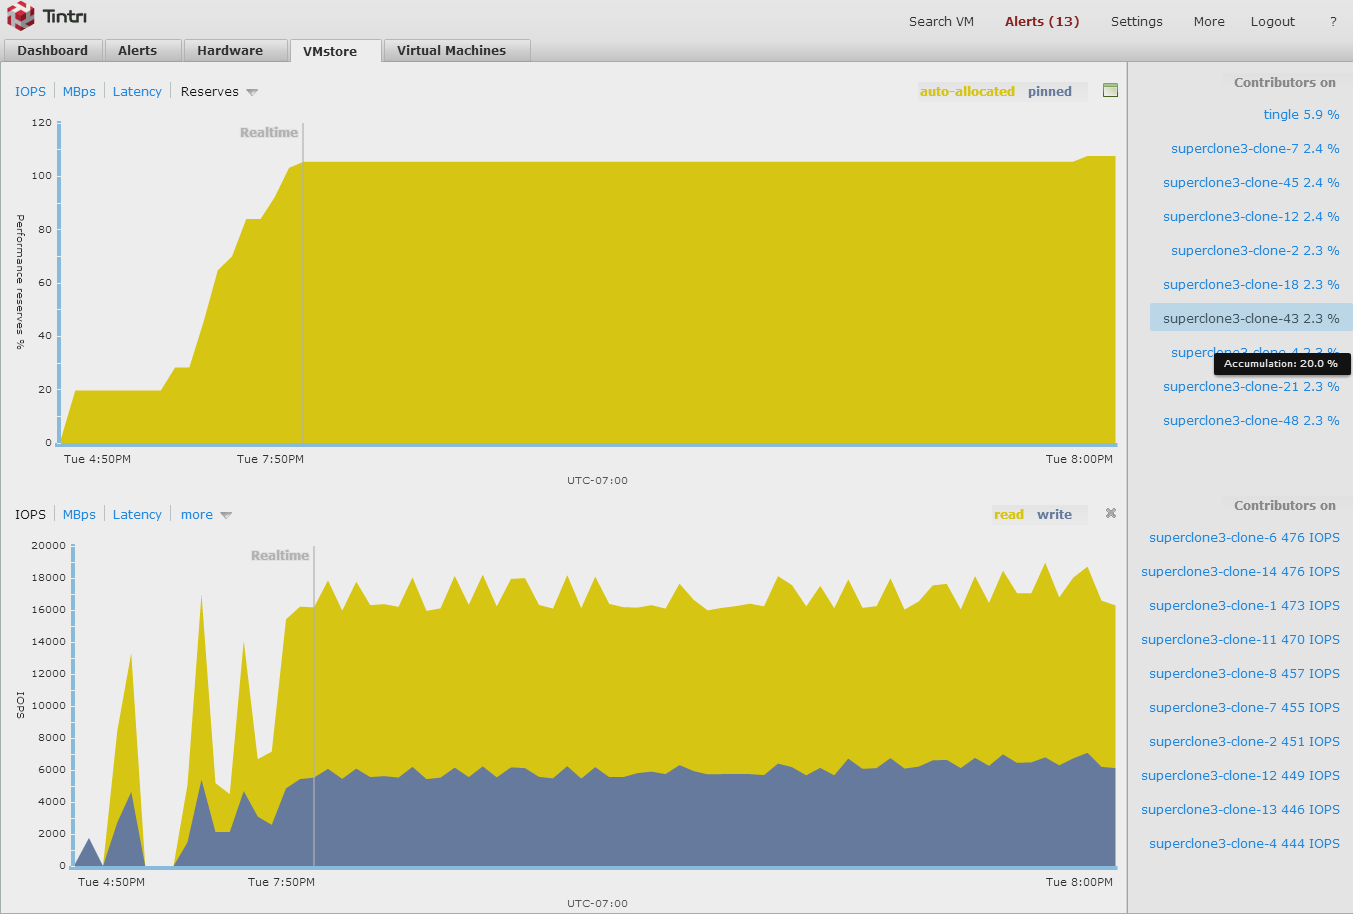 Tintri T850 seeing showing hybrid operations